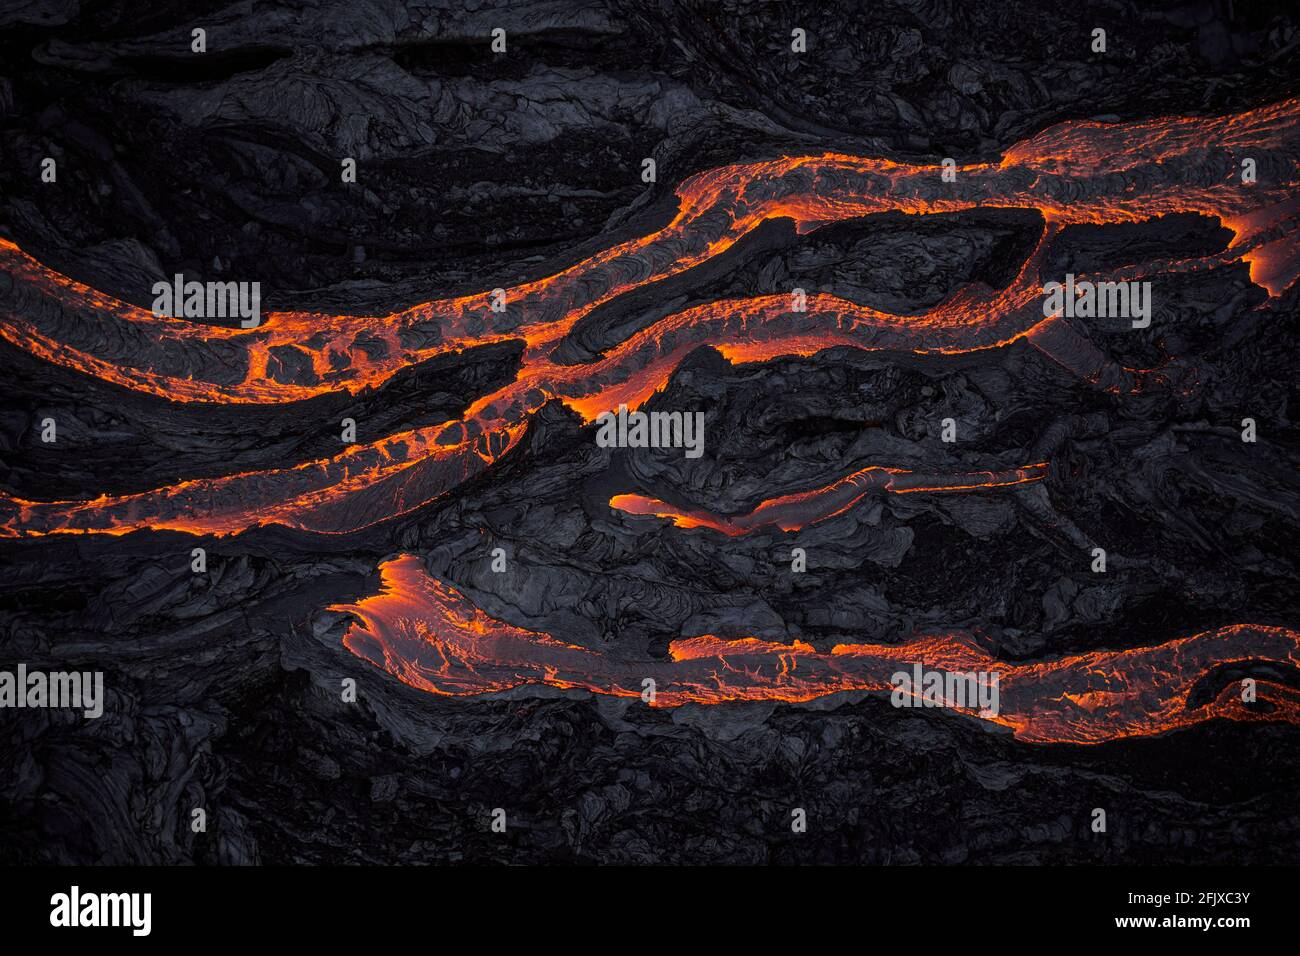 Rough terrain with flowing hot lava Stock Photo